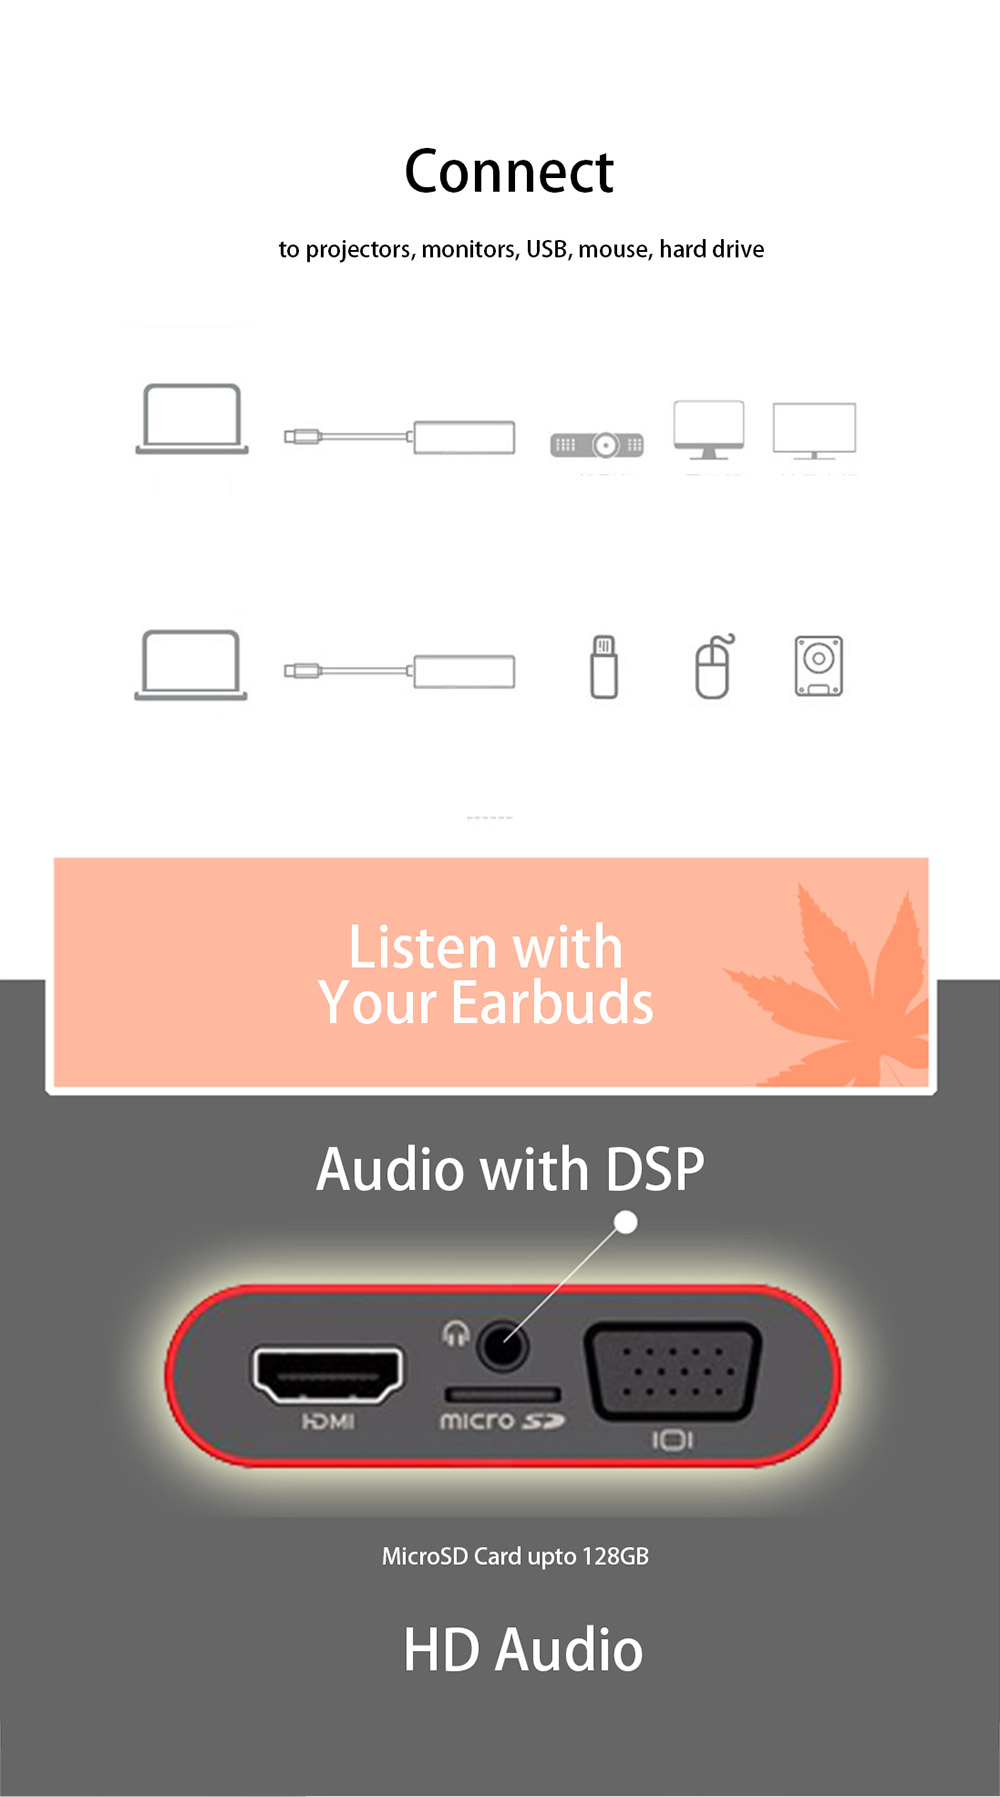 Listen with Earbuds